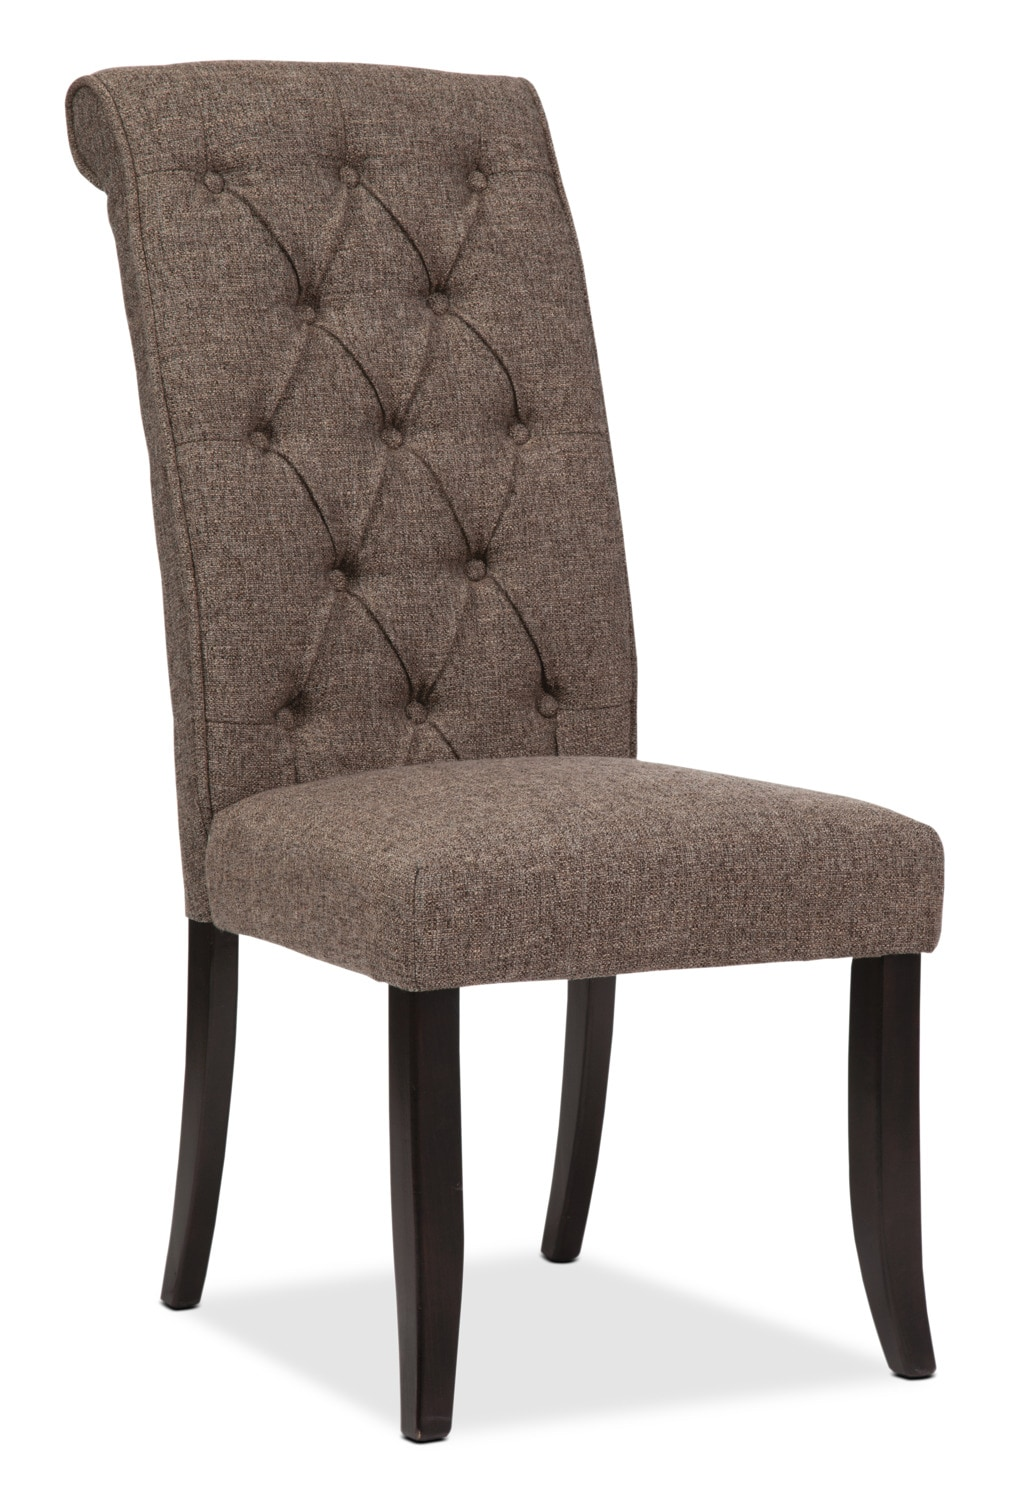 Tripton Dining Chair – Graphite